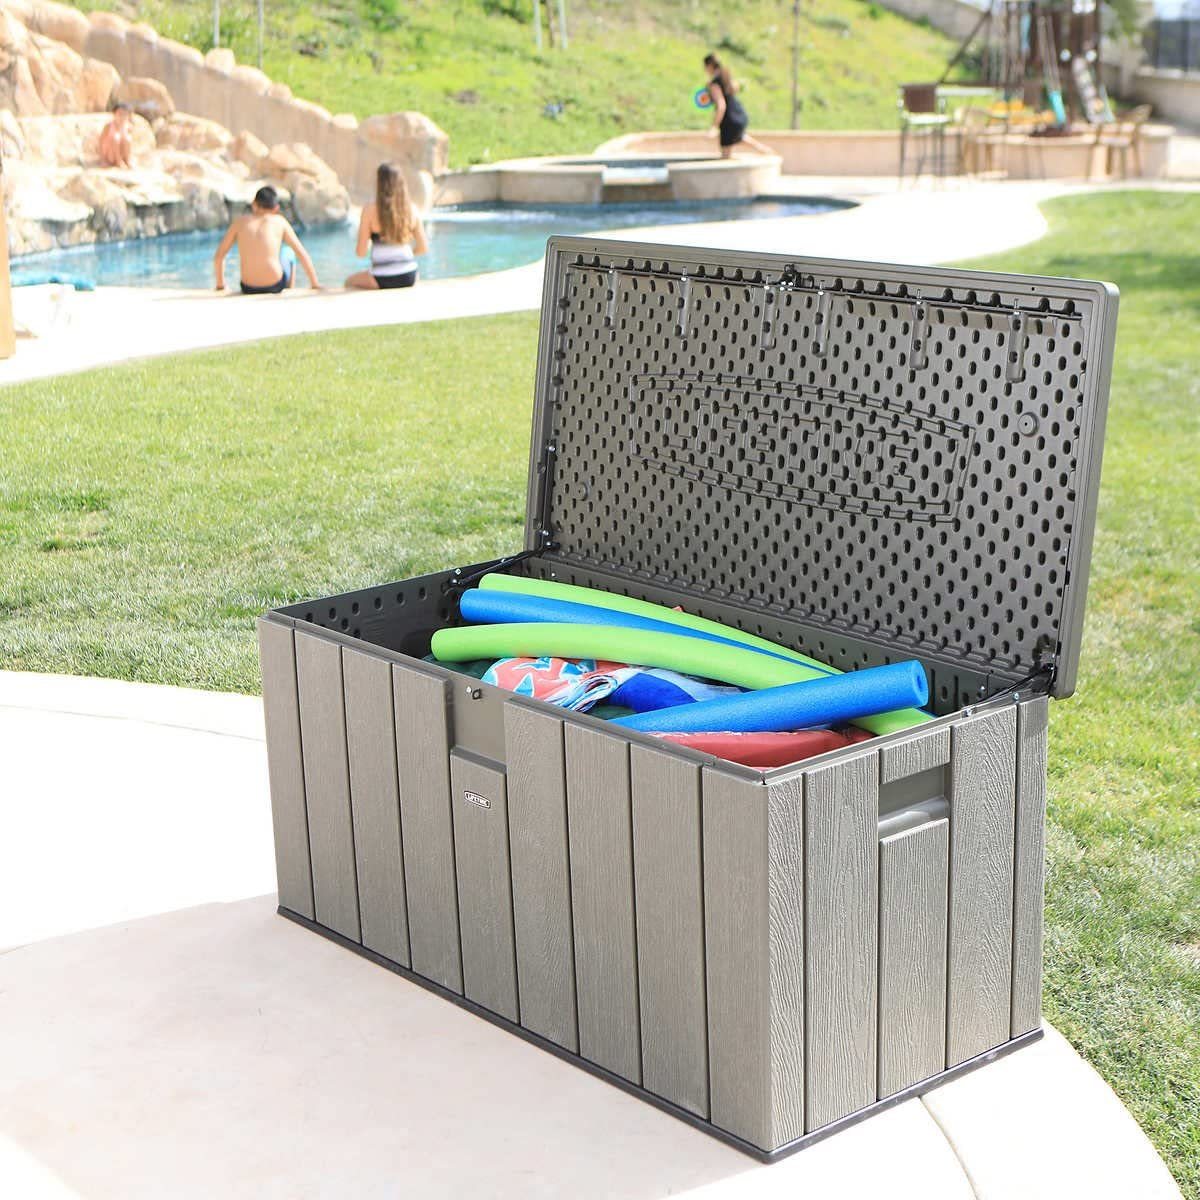 Heavy Duty, Reliable Easy Clean Large Space Versatile Lifetime Rough Cut 150-gallon Deck Box Lockable Lid with Spring Hinge Handsome Grey – Perfect For Outdoor Storage, Fun Tailgating, Picnics